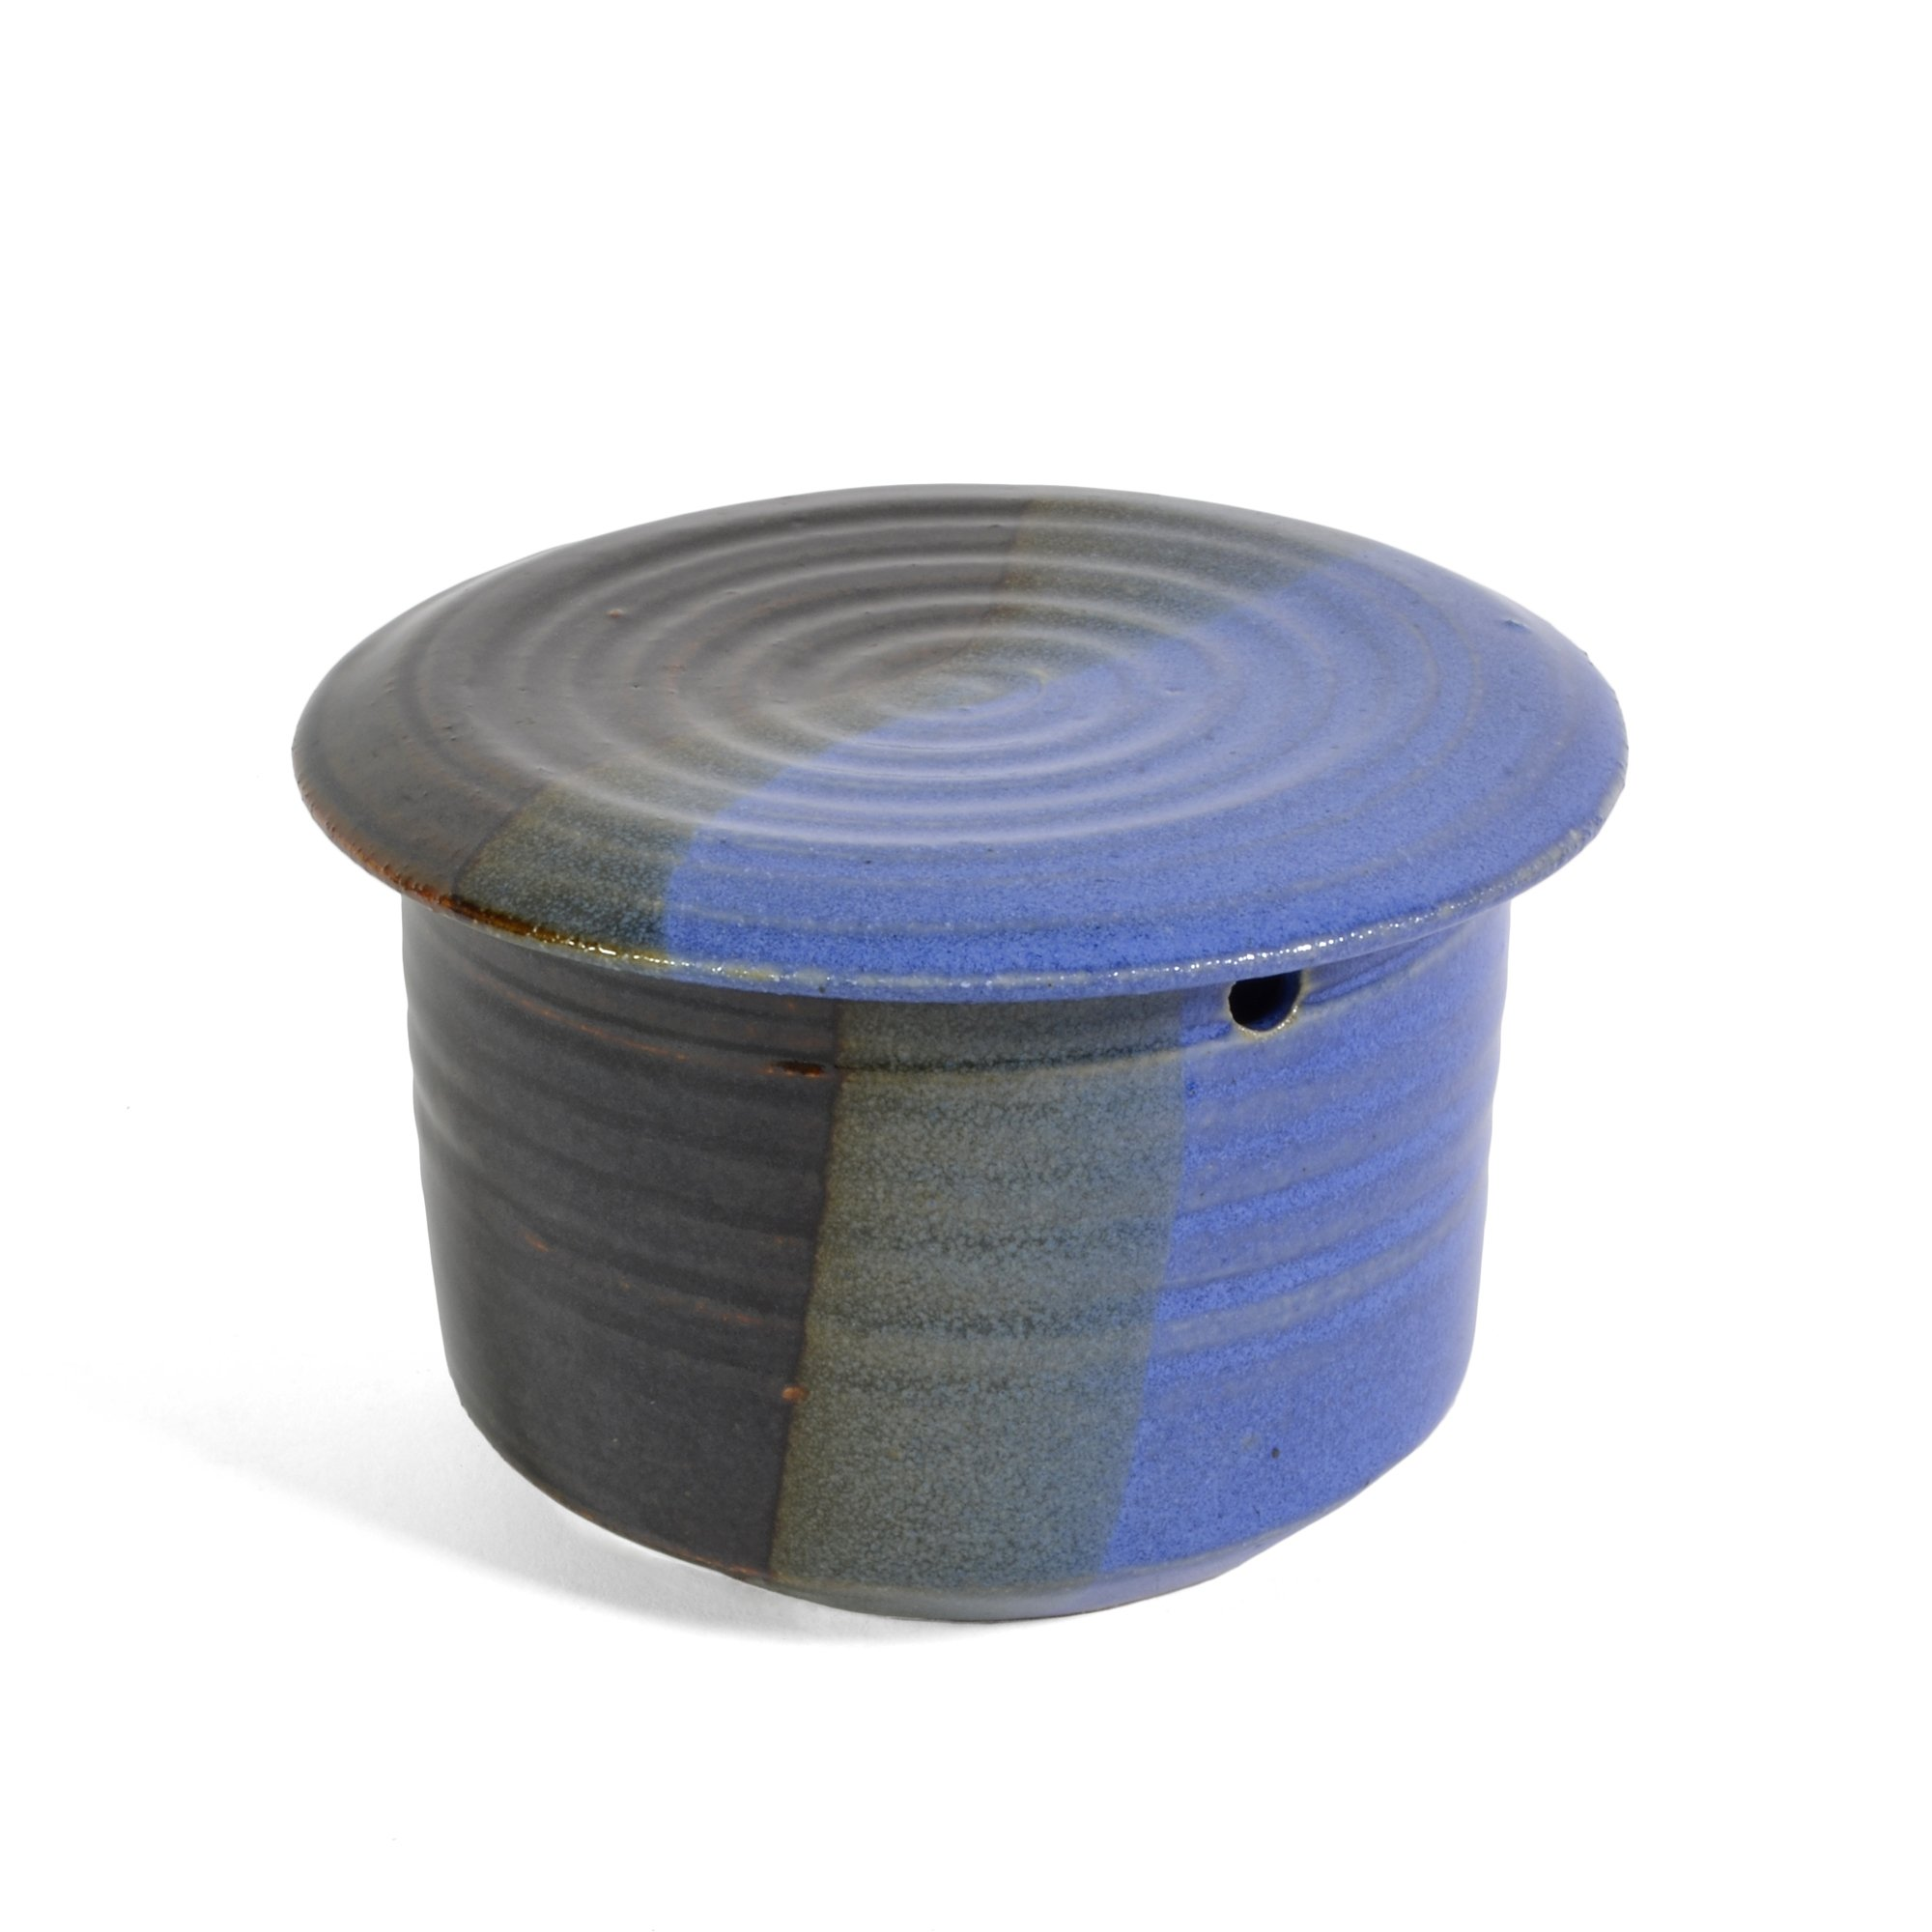 Holman Pottery French Butter Keeper, Blue Earth